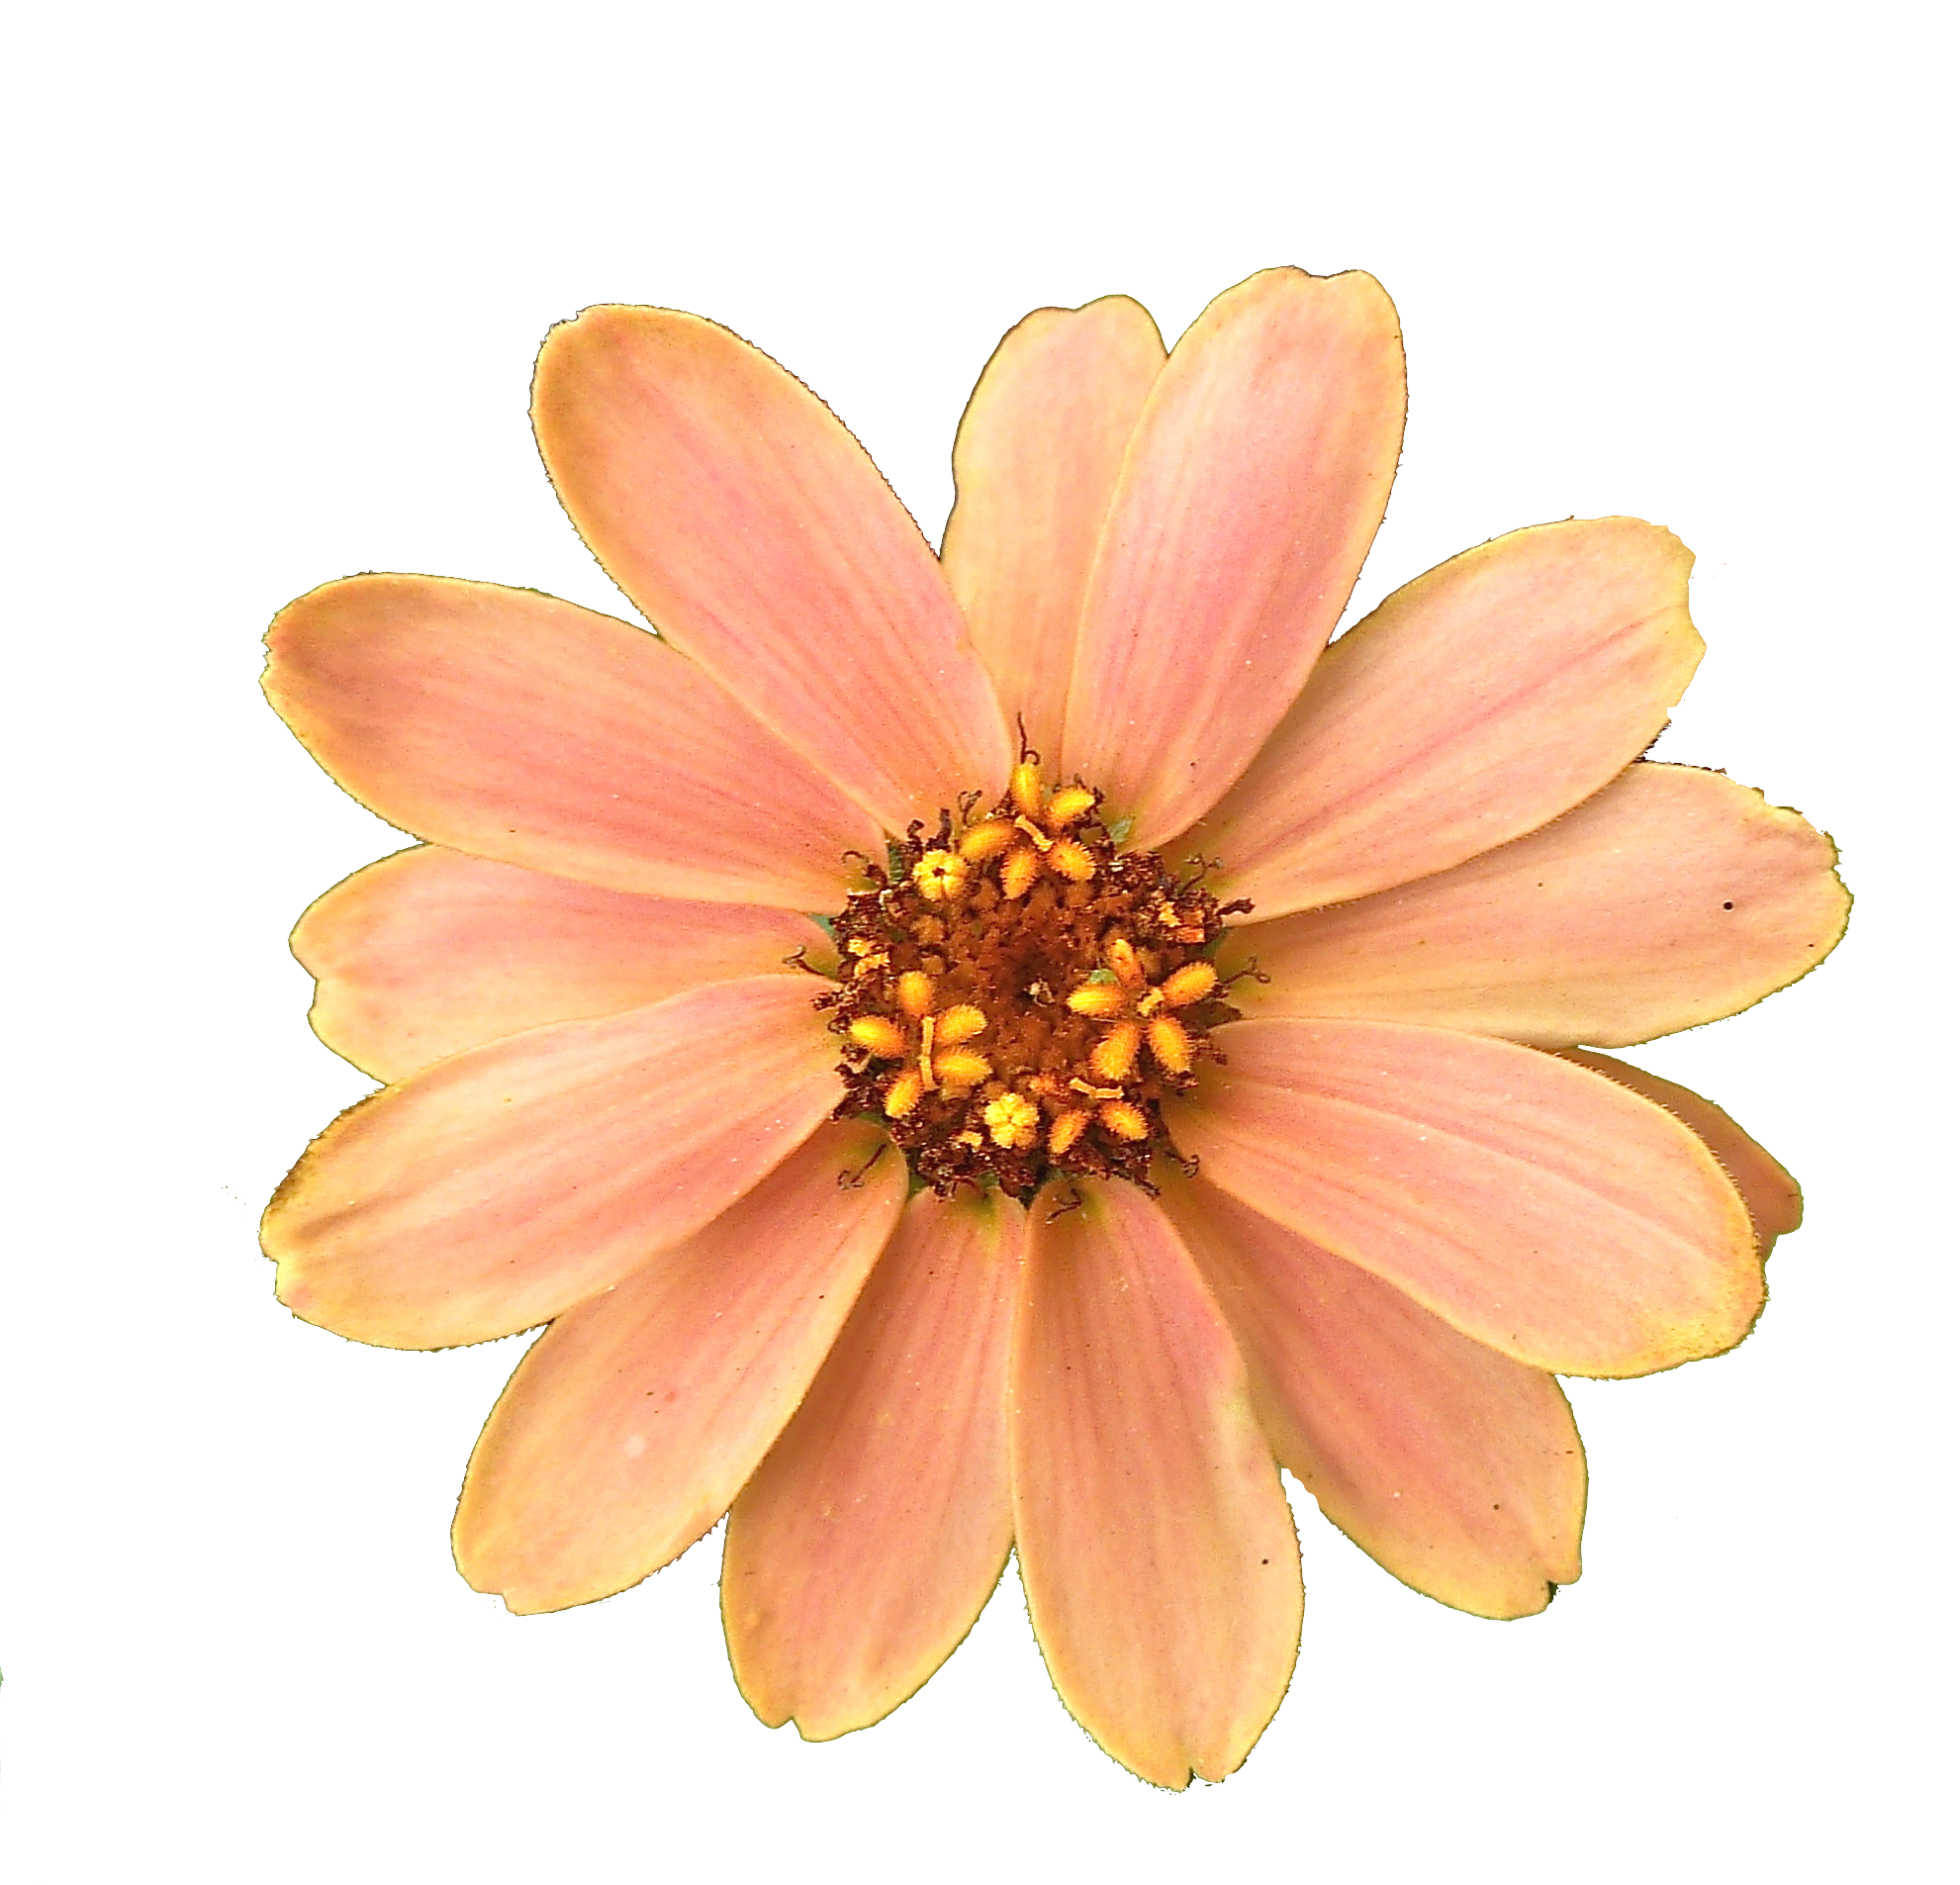 Peach flower png. Transparent pictures free icons